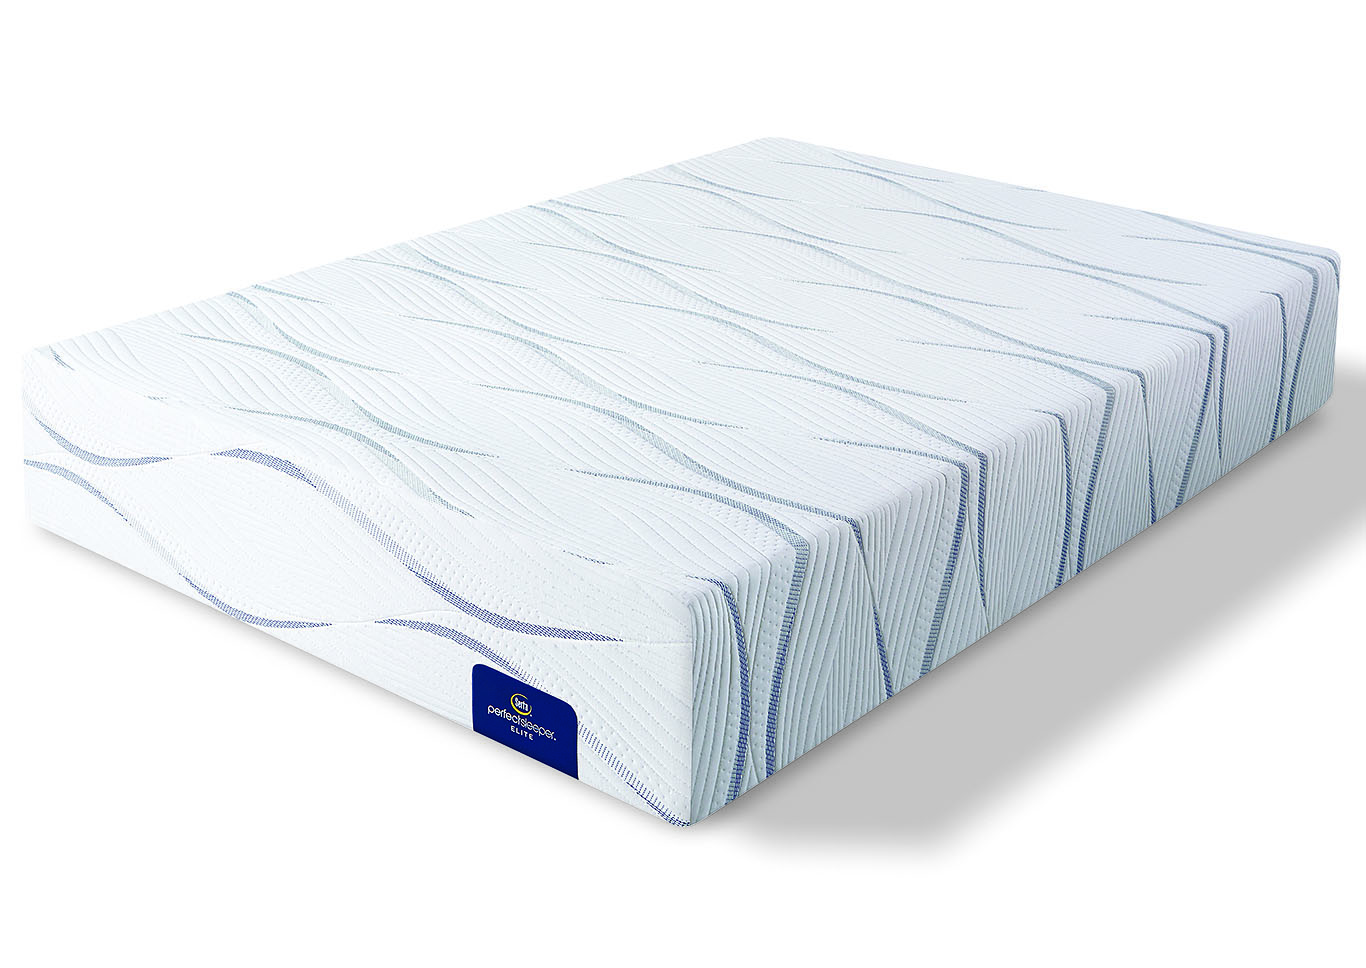 Southpoint II California King Mattress,Huffman Koos